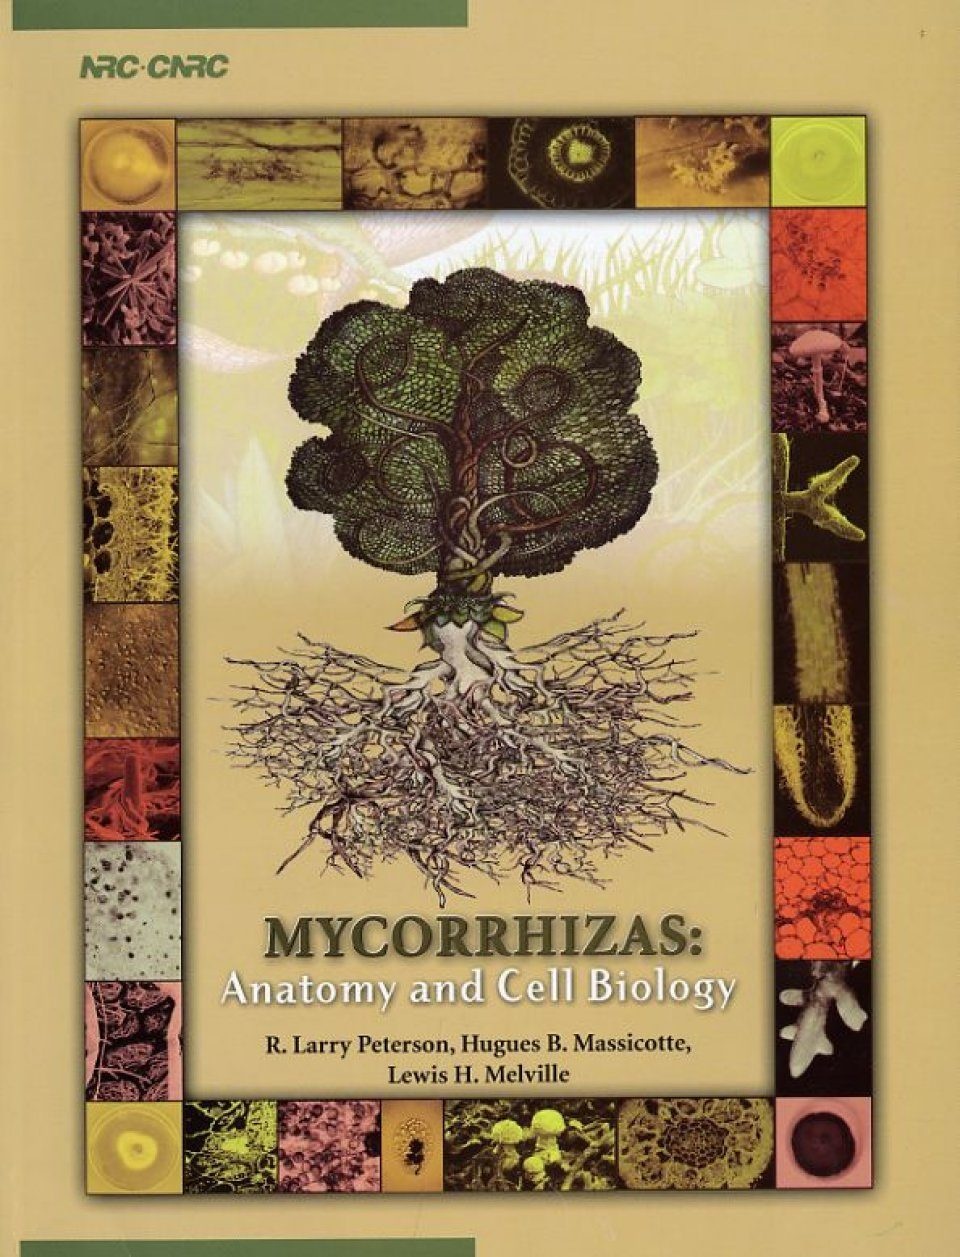 Mycorrhizas: Anatomy and Cell Biology: RL Peterson, HB Massicotte ...